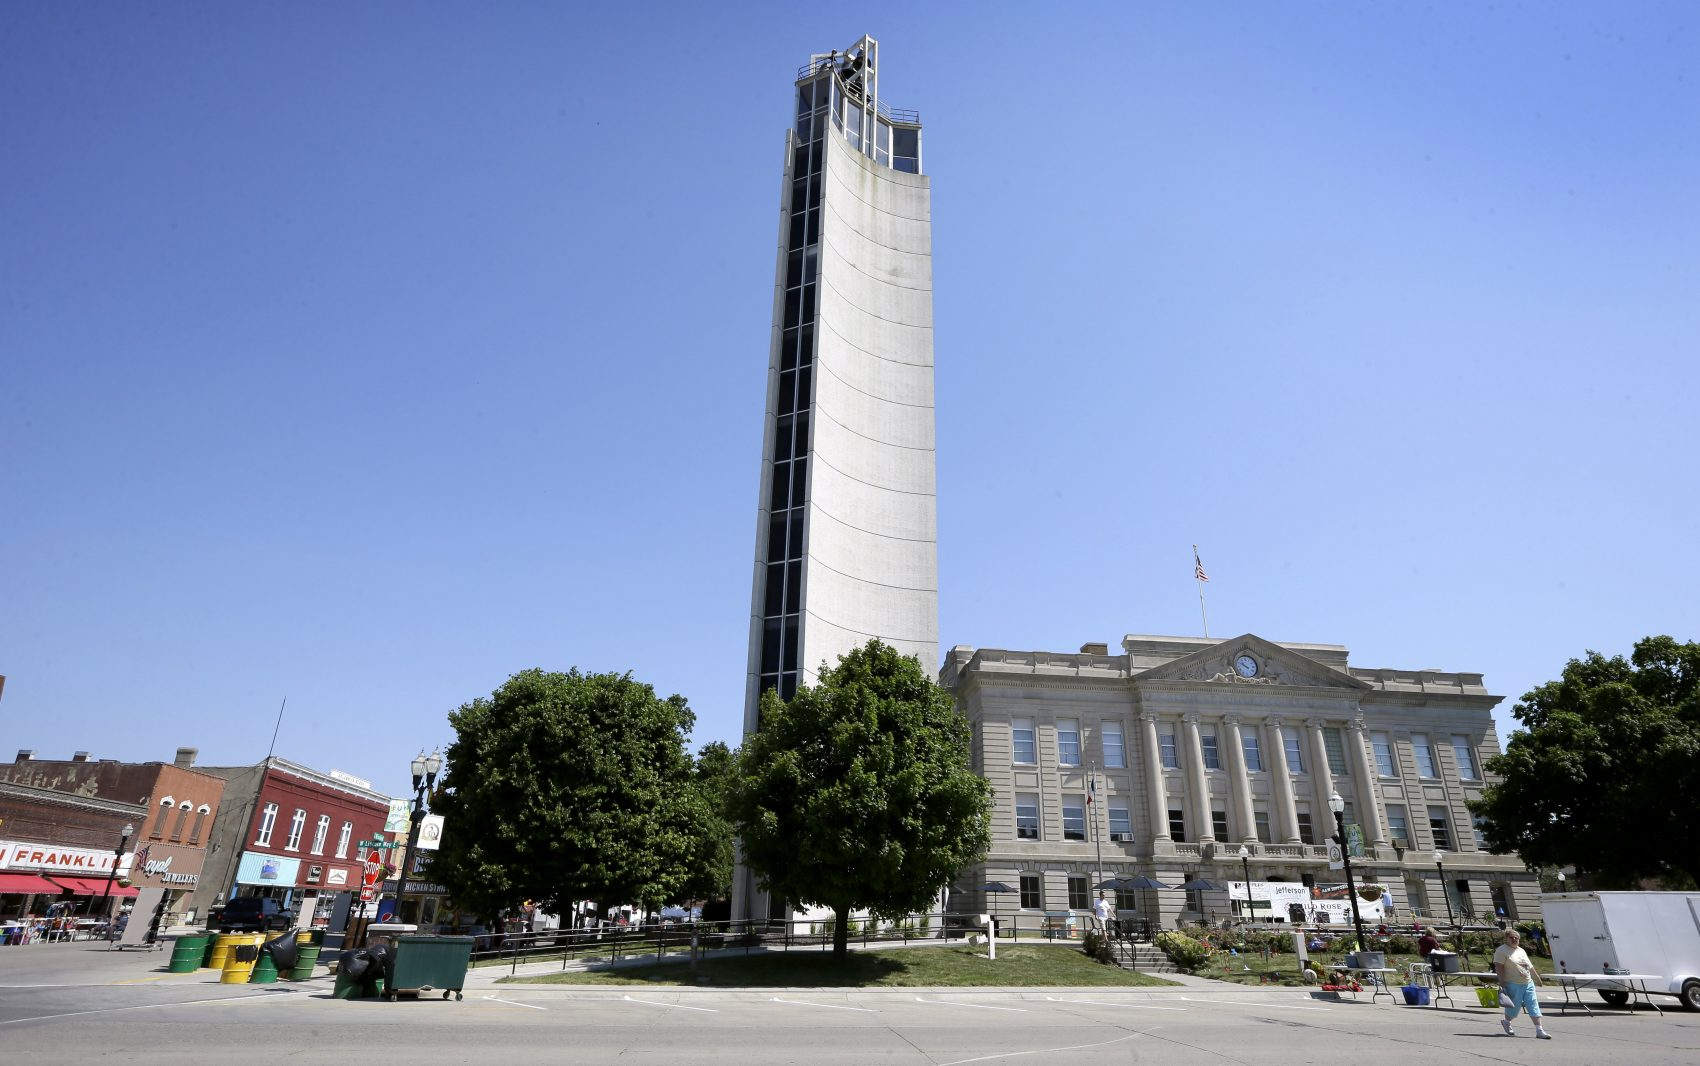 The Mahanay Memorial Carillon Tower is seen next to the Greene County Courthouse, Friday, June 10, 2016, in Jefferson, Iowa. (Charlie Neibergall/AP)